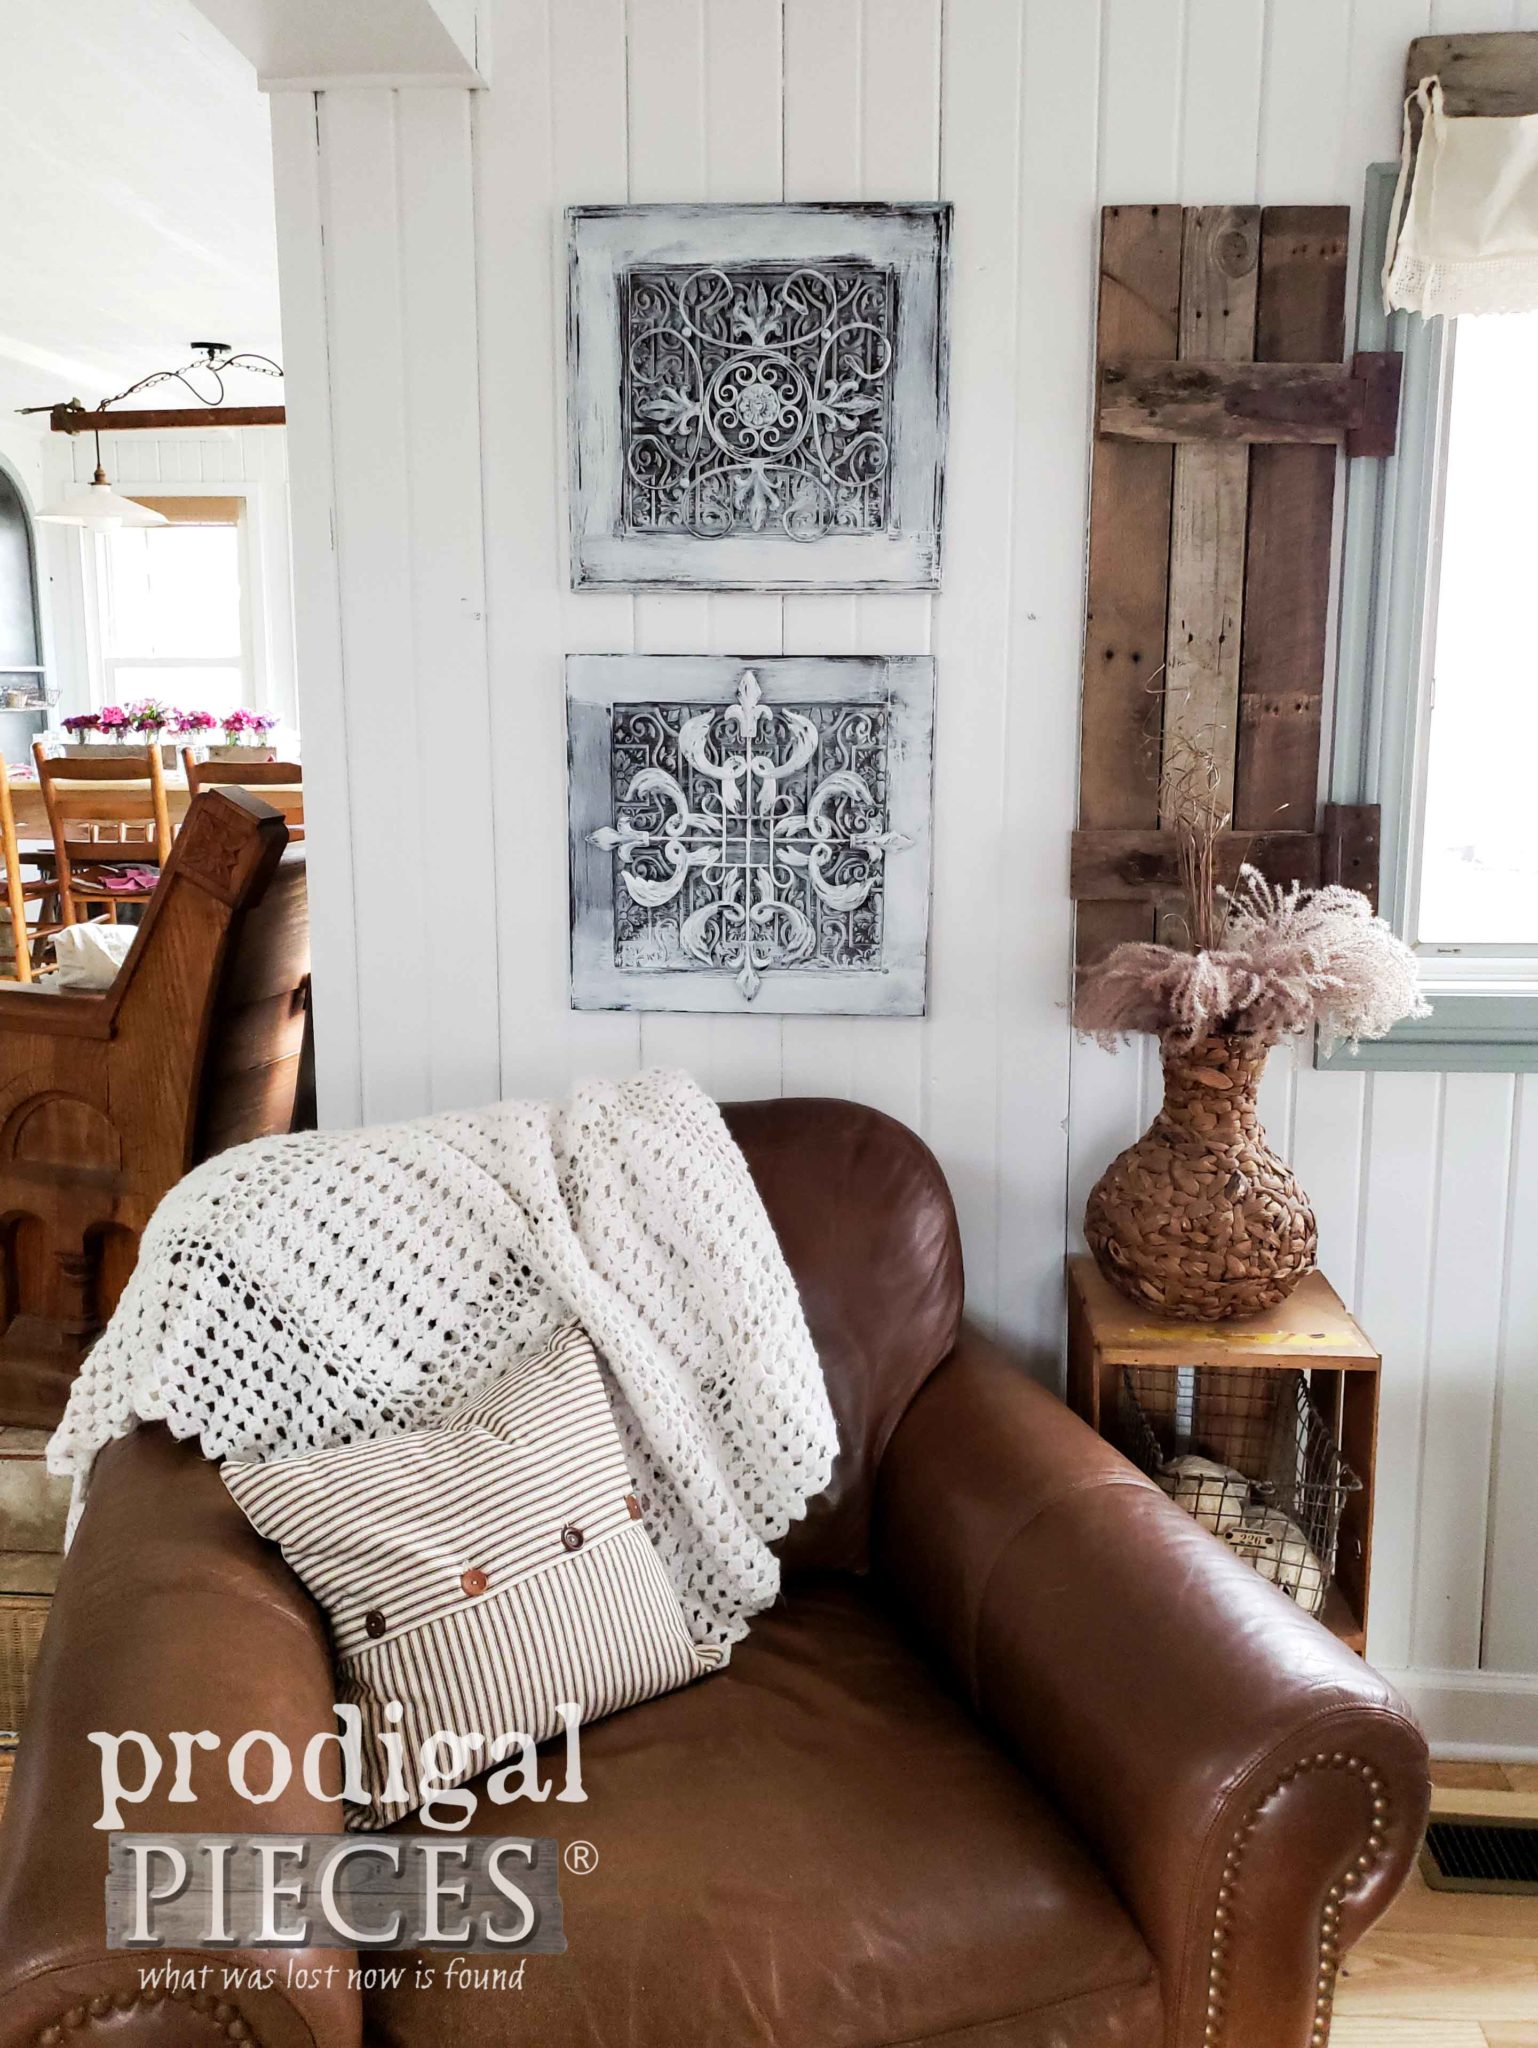 DIY Farmhouse Wall Decor made from Upcycled Cupboard Doors and Thrifted Metal Art | Video tutorial by Larissa of Prodigal Pieces | prodigalpieces.com #prodigalpieces #diy #farmhouse #home #handmade #homedecor